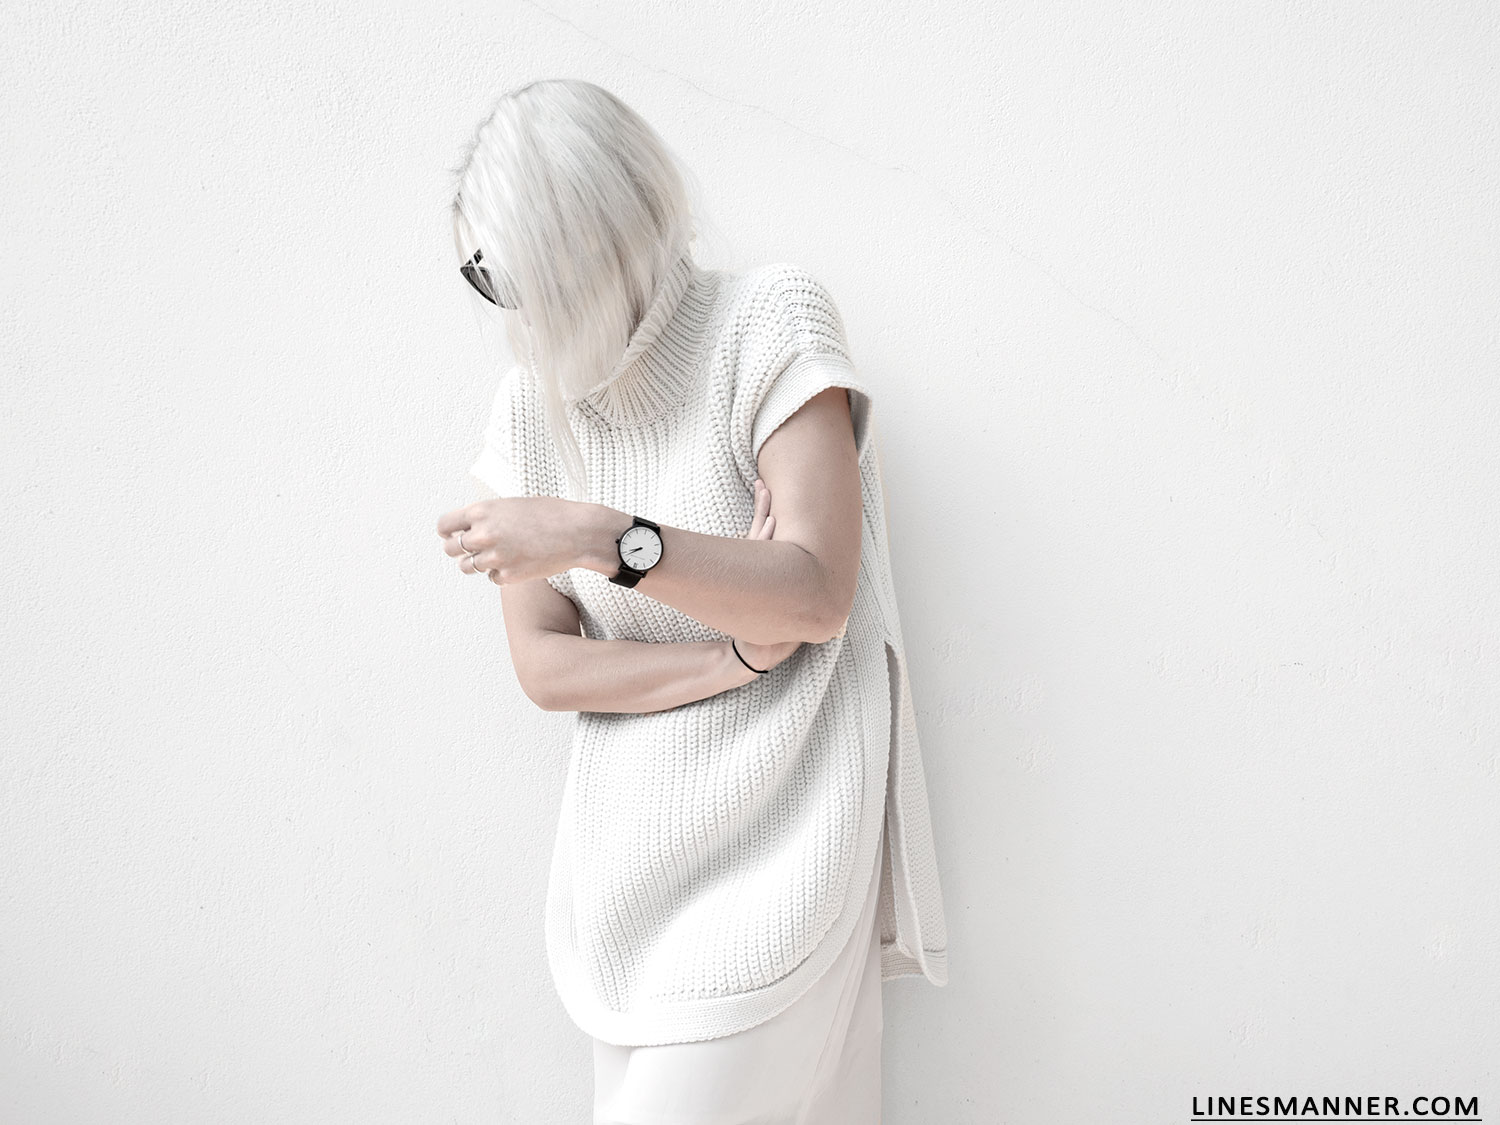 Lines-Manner-Sleeveless-Clean-Minimal-Effortless-Neutrals-Whiteout-Details-Essential-Staple-Statement_Piece-Knit-Sweater-Turtleneck-Trans_Seasonal-Larsson_And_Jennings-Warm-5